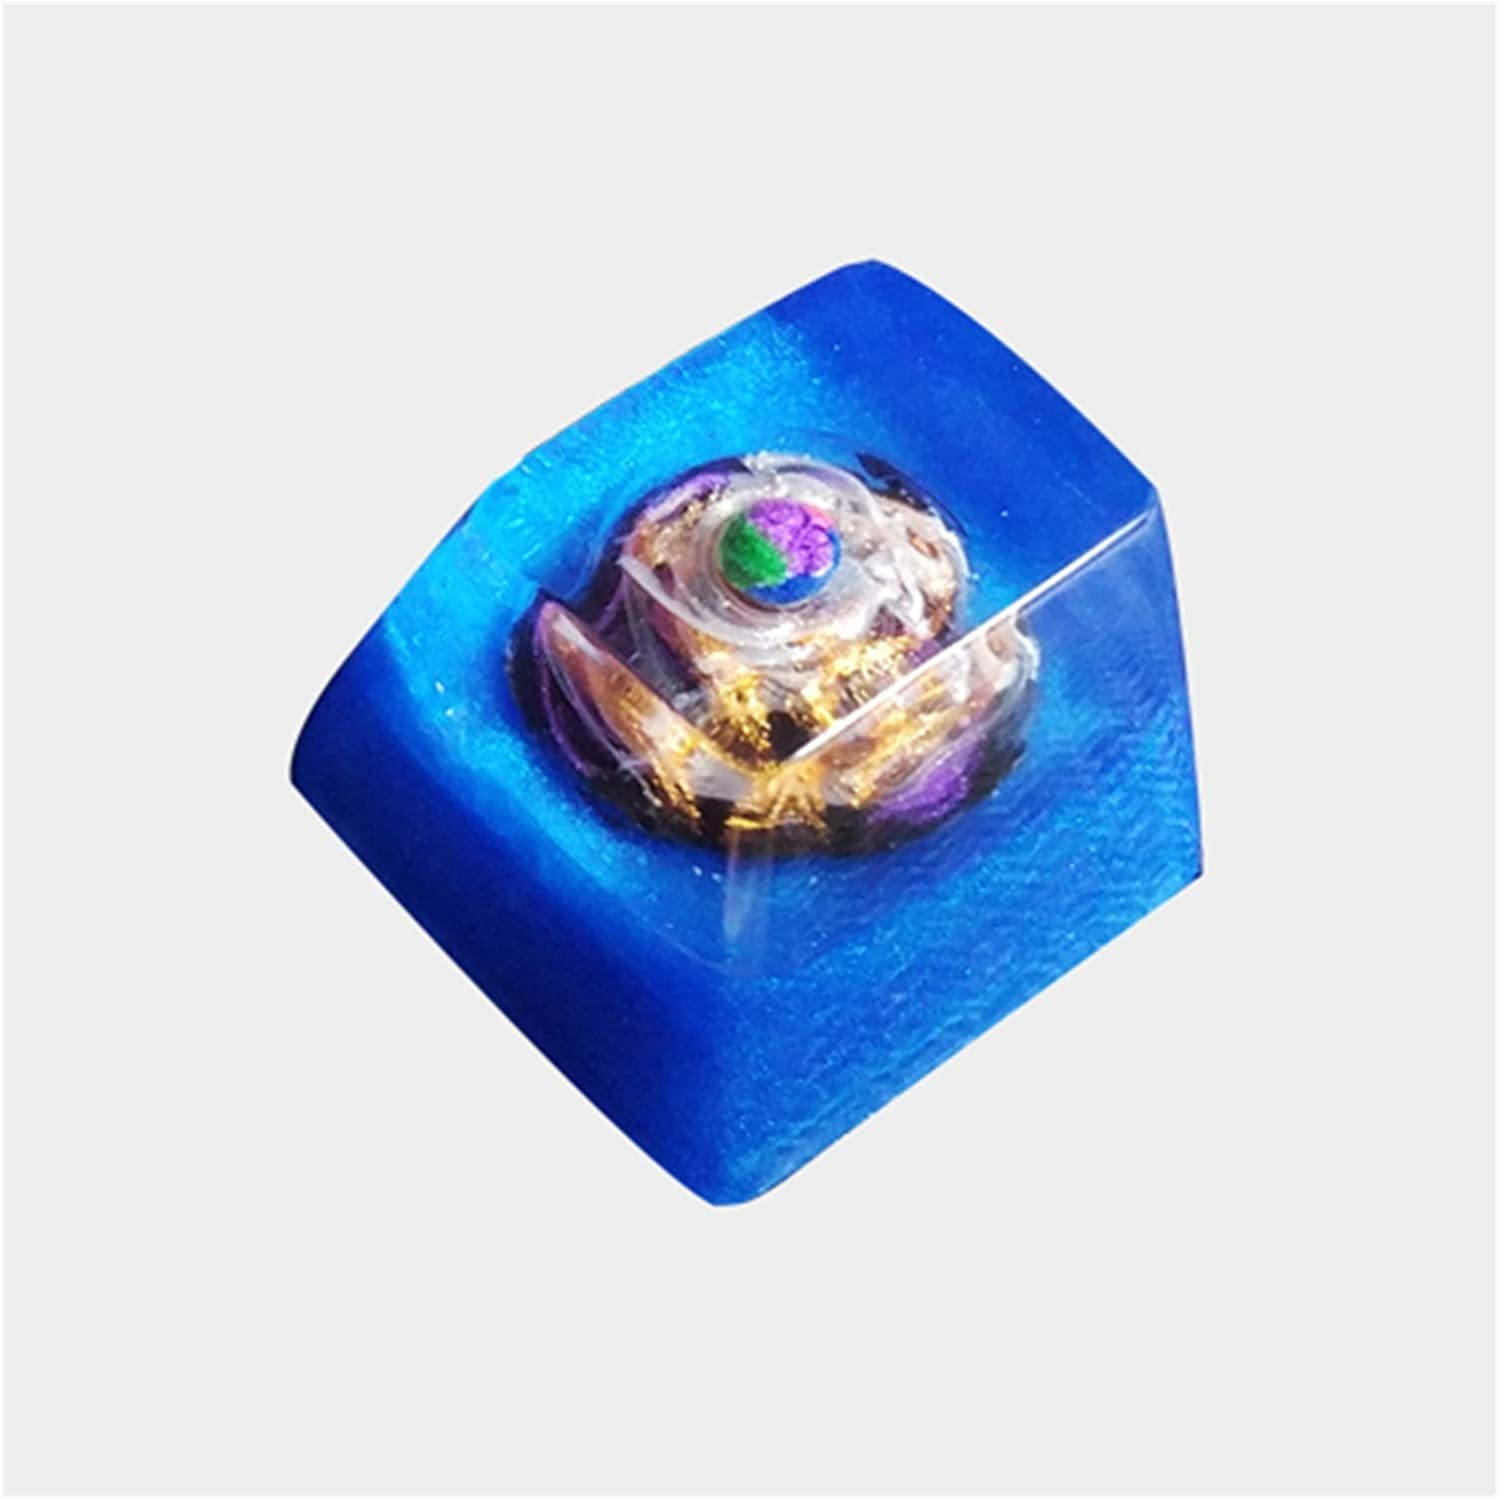 Keycaps 1pc Keycap Planet Resin Sale price Backlight for Keyboar Washington Mall Mechanical